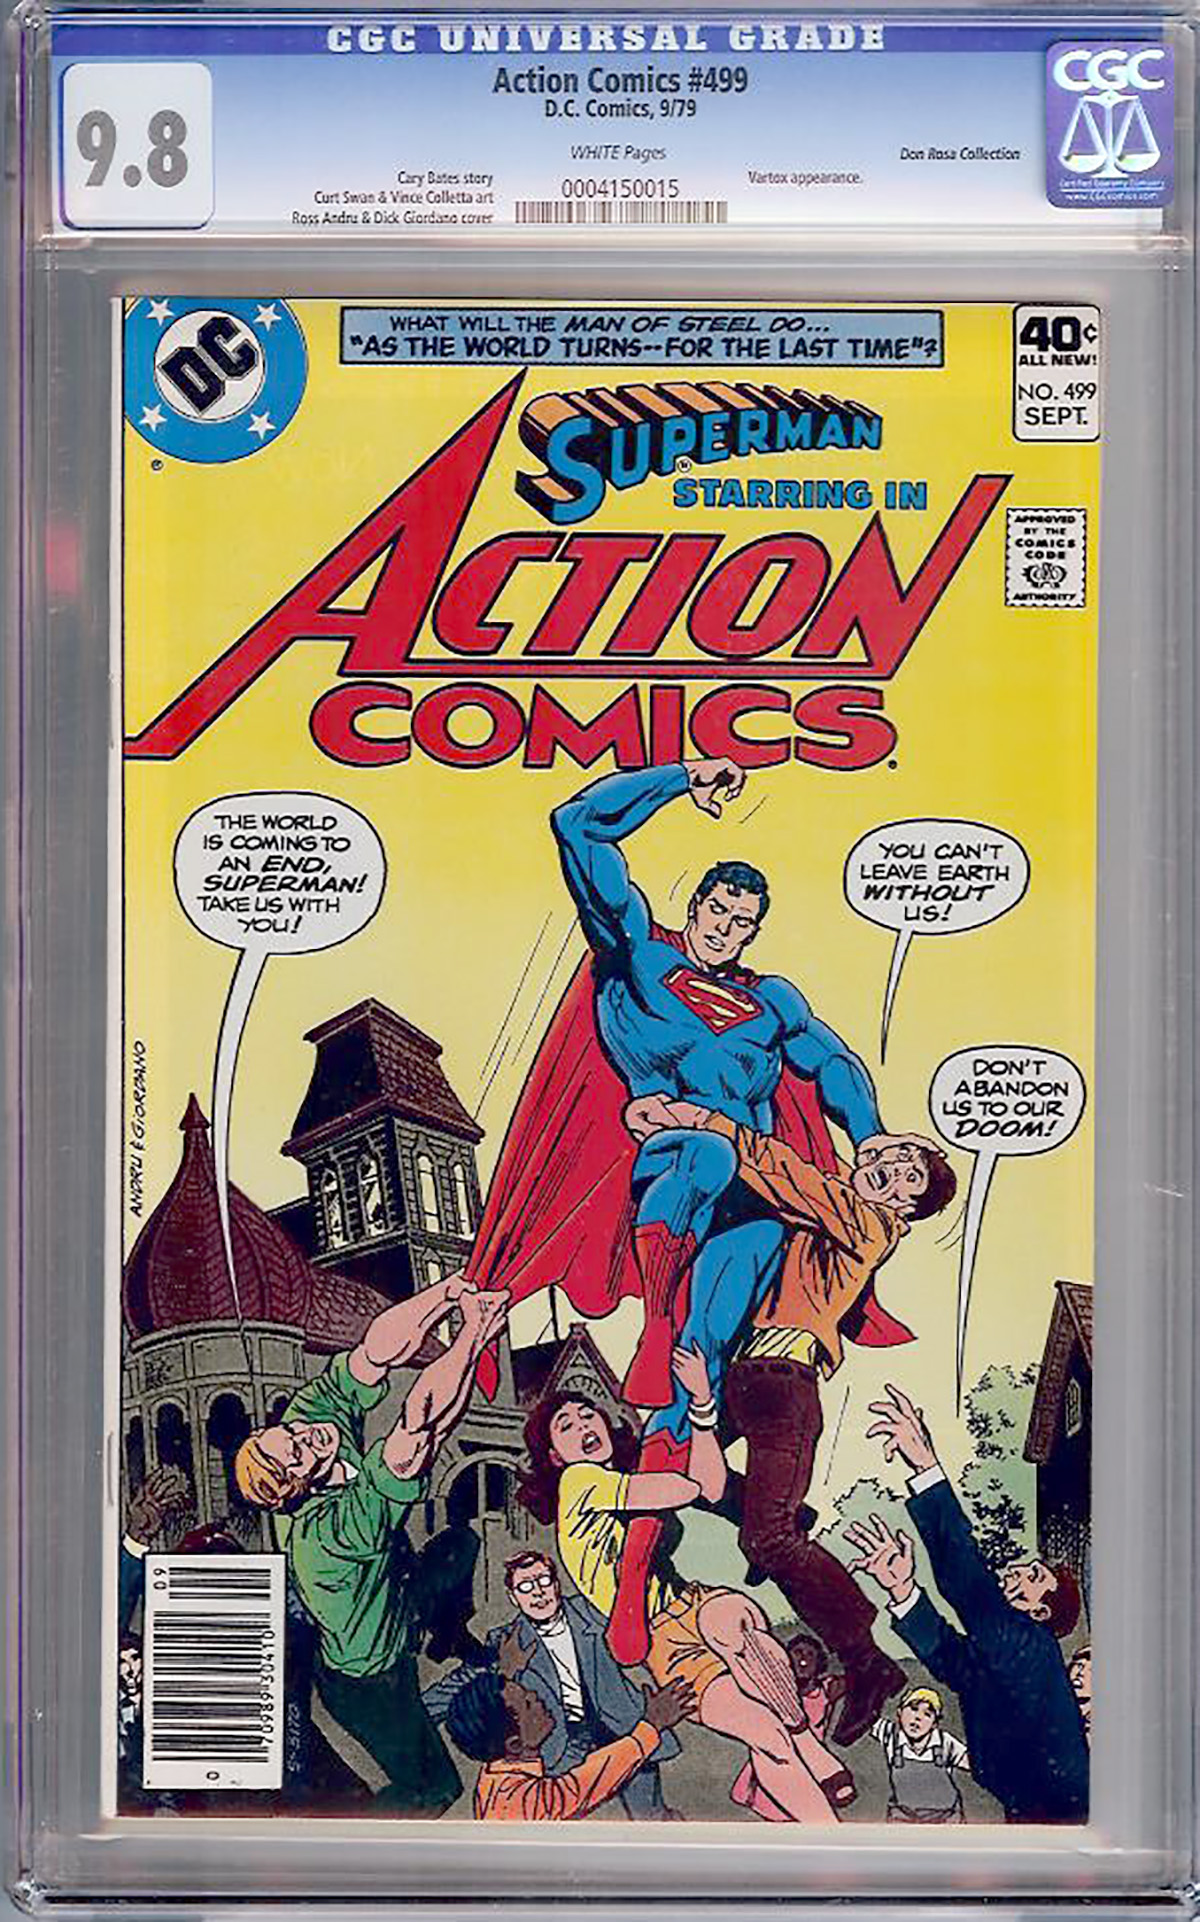 Action Comics #499 CGC 9.8 w Don Rosa Collection